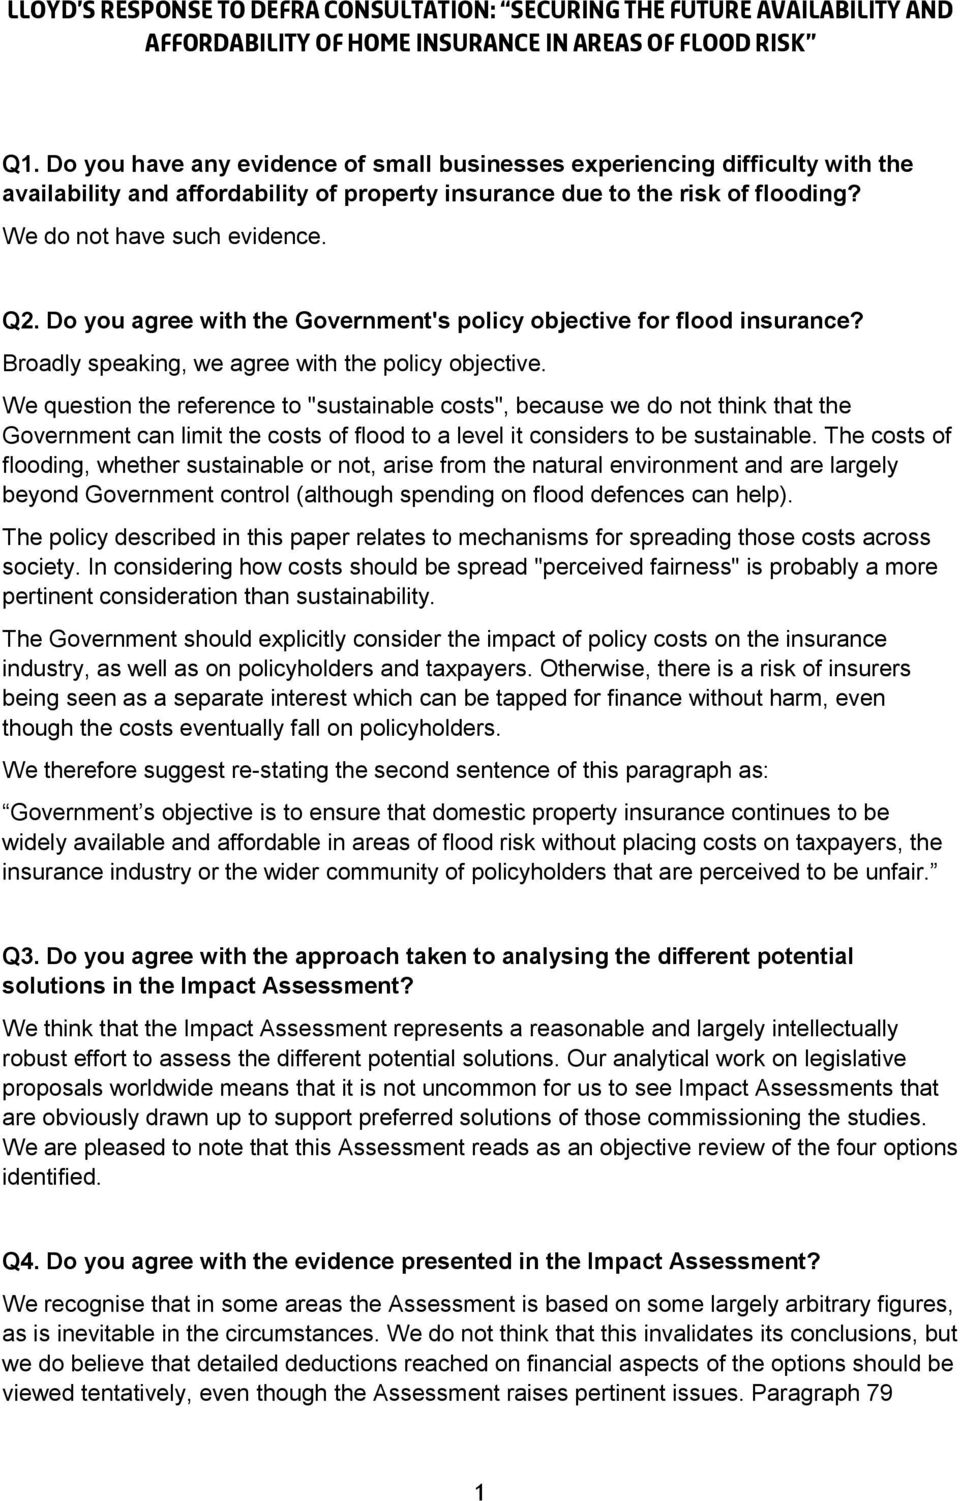 Do you agree with the Government's policy objective for flood insurance? Broadly speaking, we agree with the policy objective.